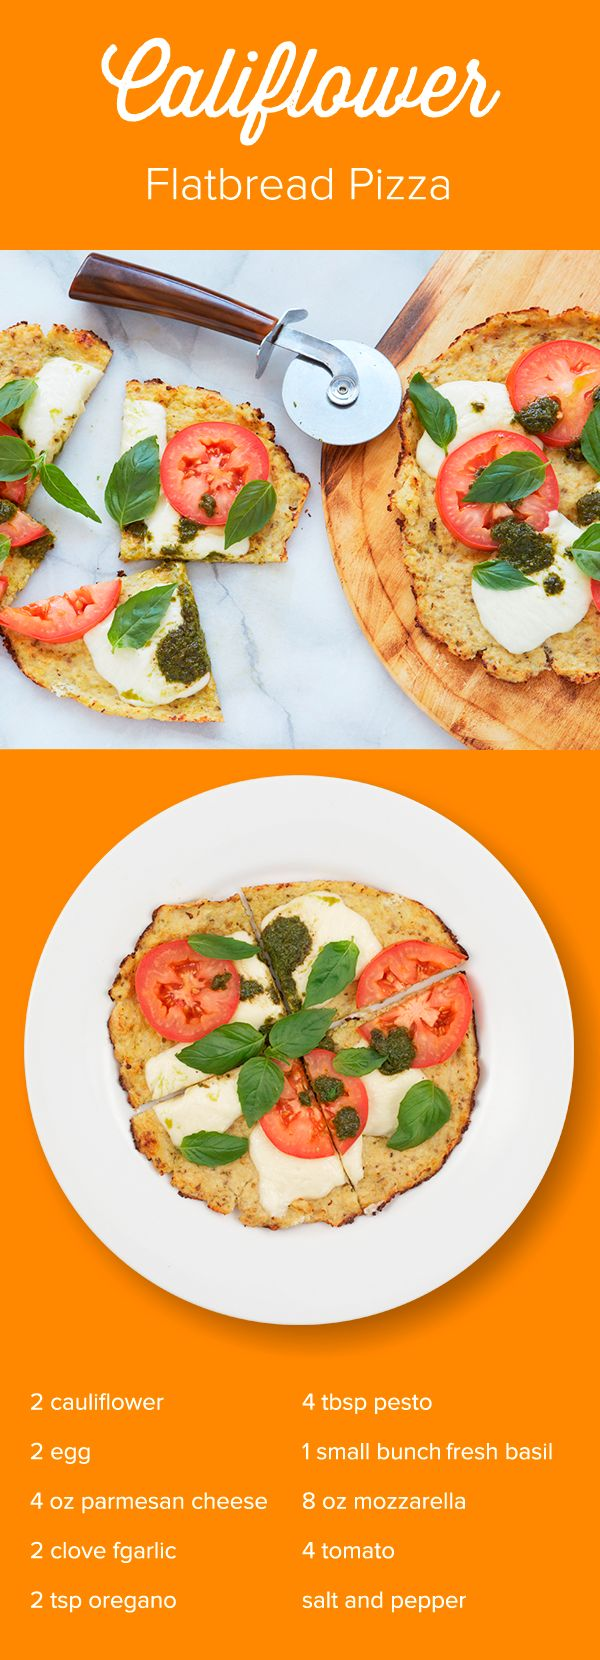 Start loving Pizza night again! Cauliflower Flatbread is crispy and delicious without bread carbs and dairy. Just one of the creative, chef-designed 1/2 hr recipes you'll prepare when you try Just Add Cooking. Use Promo Code JUSTADDPINTEREST to get $30 off your first meal kit delivery.